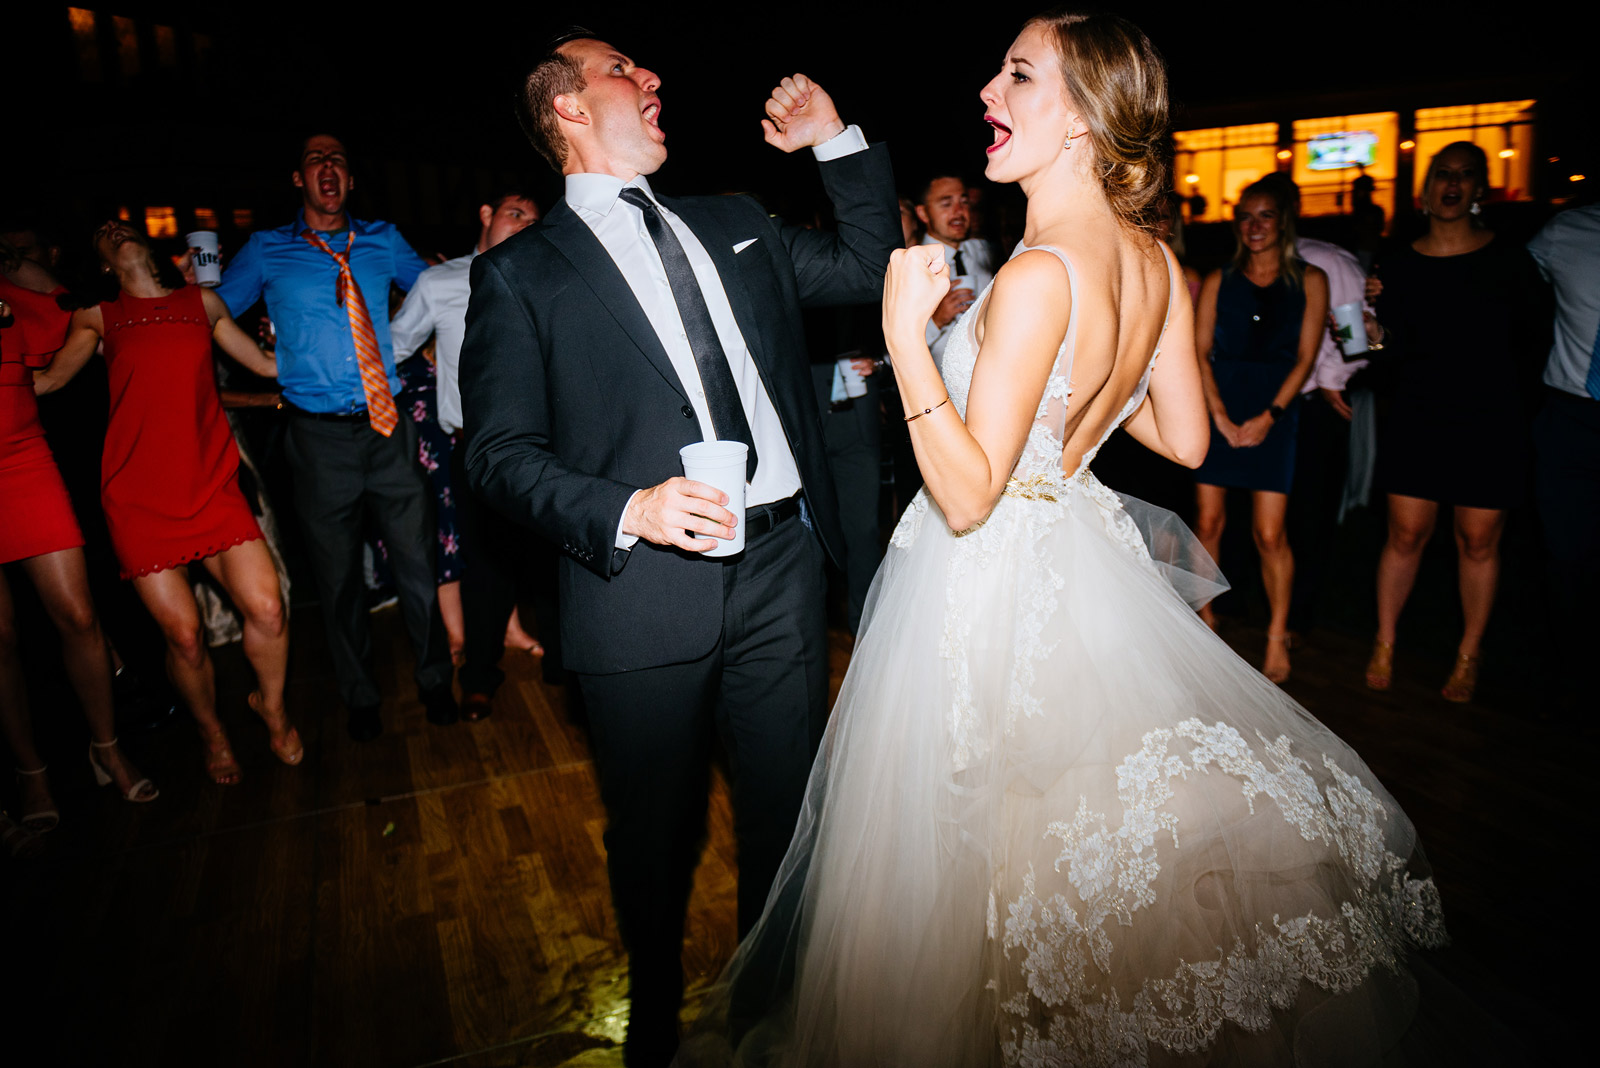 bride groom dancing zenner house wedding athens ohio